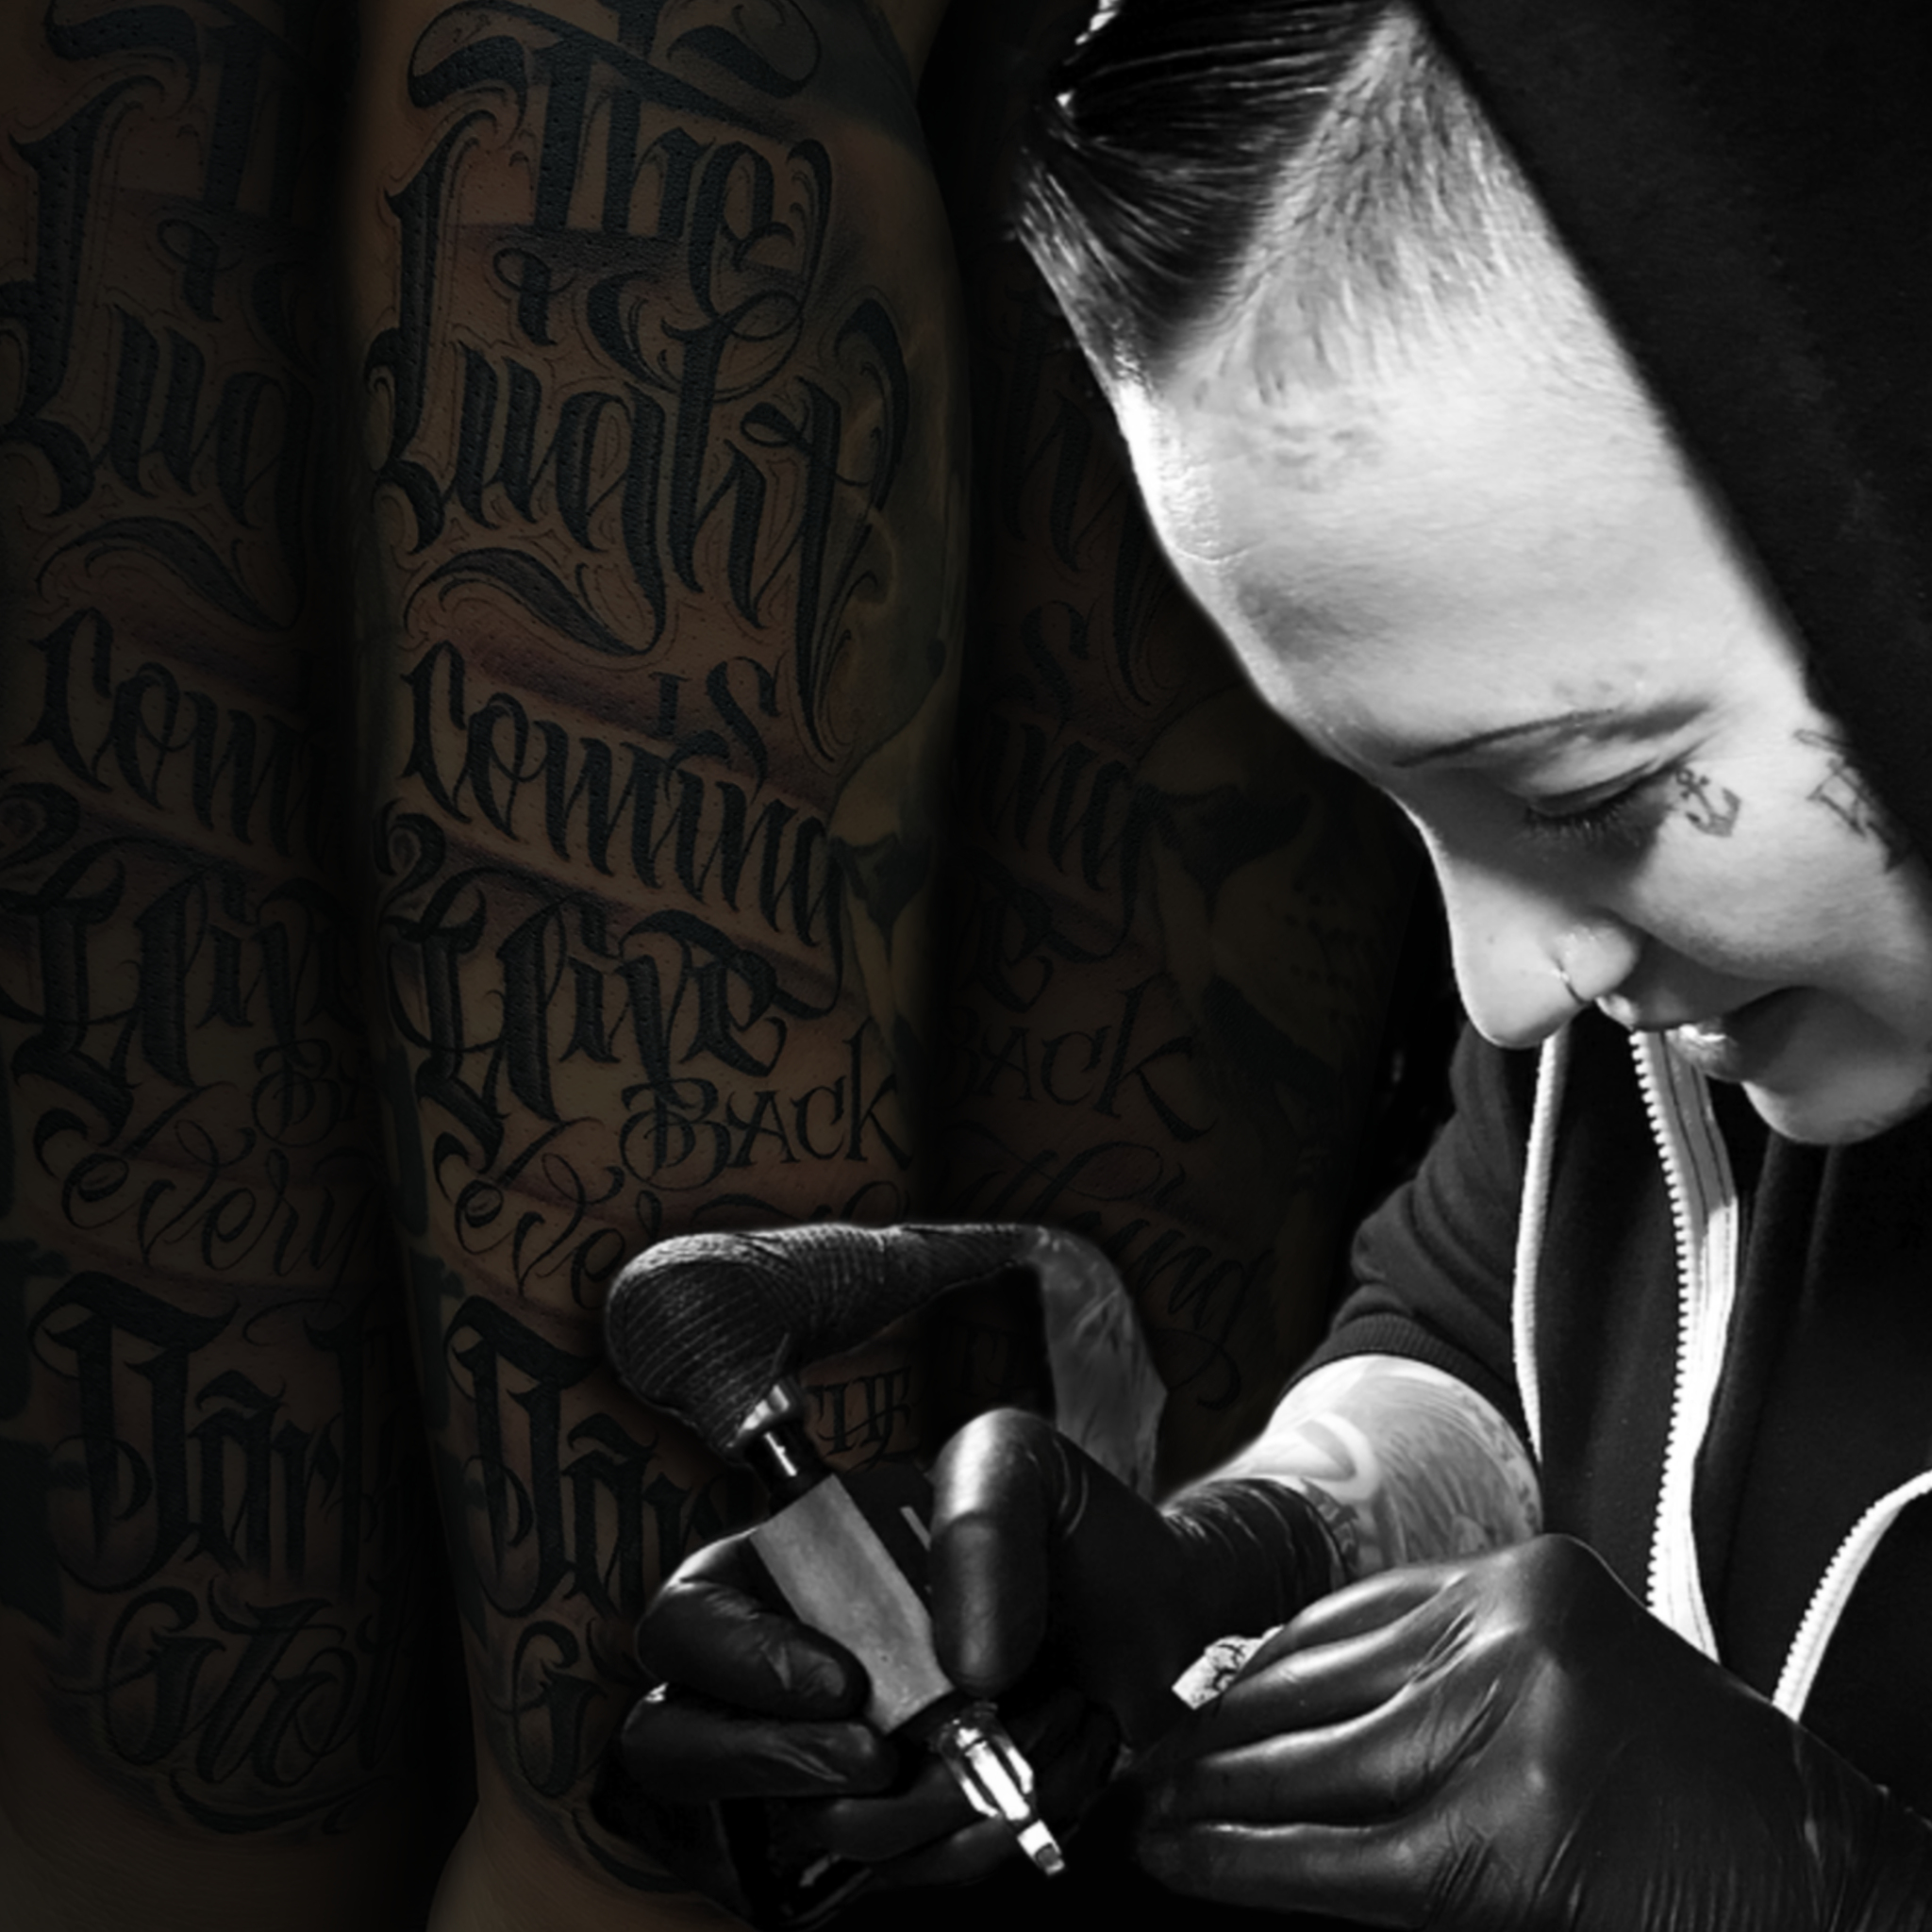 C.J. Quiroz - Years Tattooing: 16Appointment: email Studio@SykoticInk.comPreferred Style: Lettering, Black & Grey